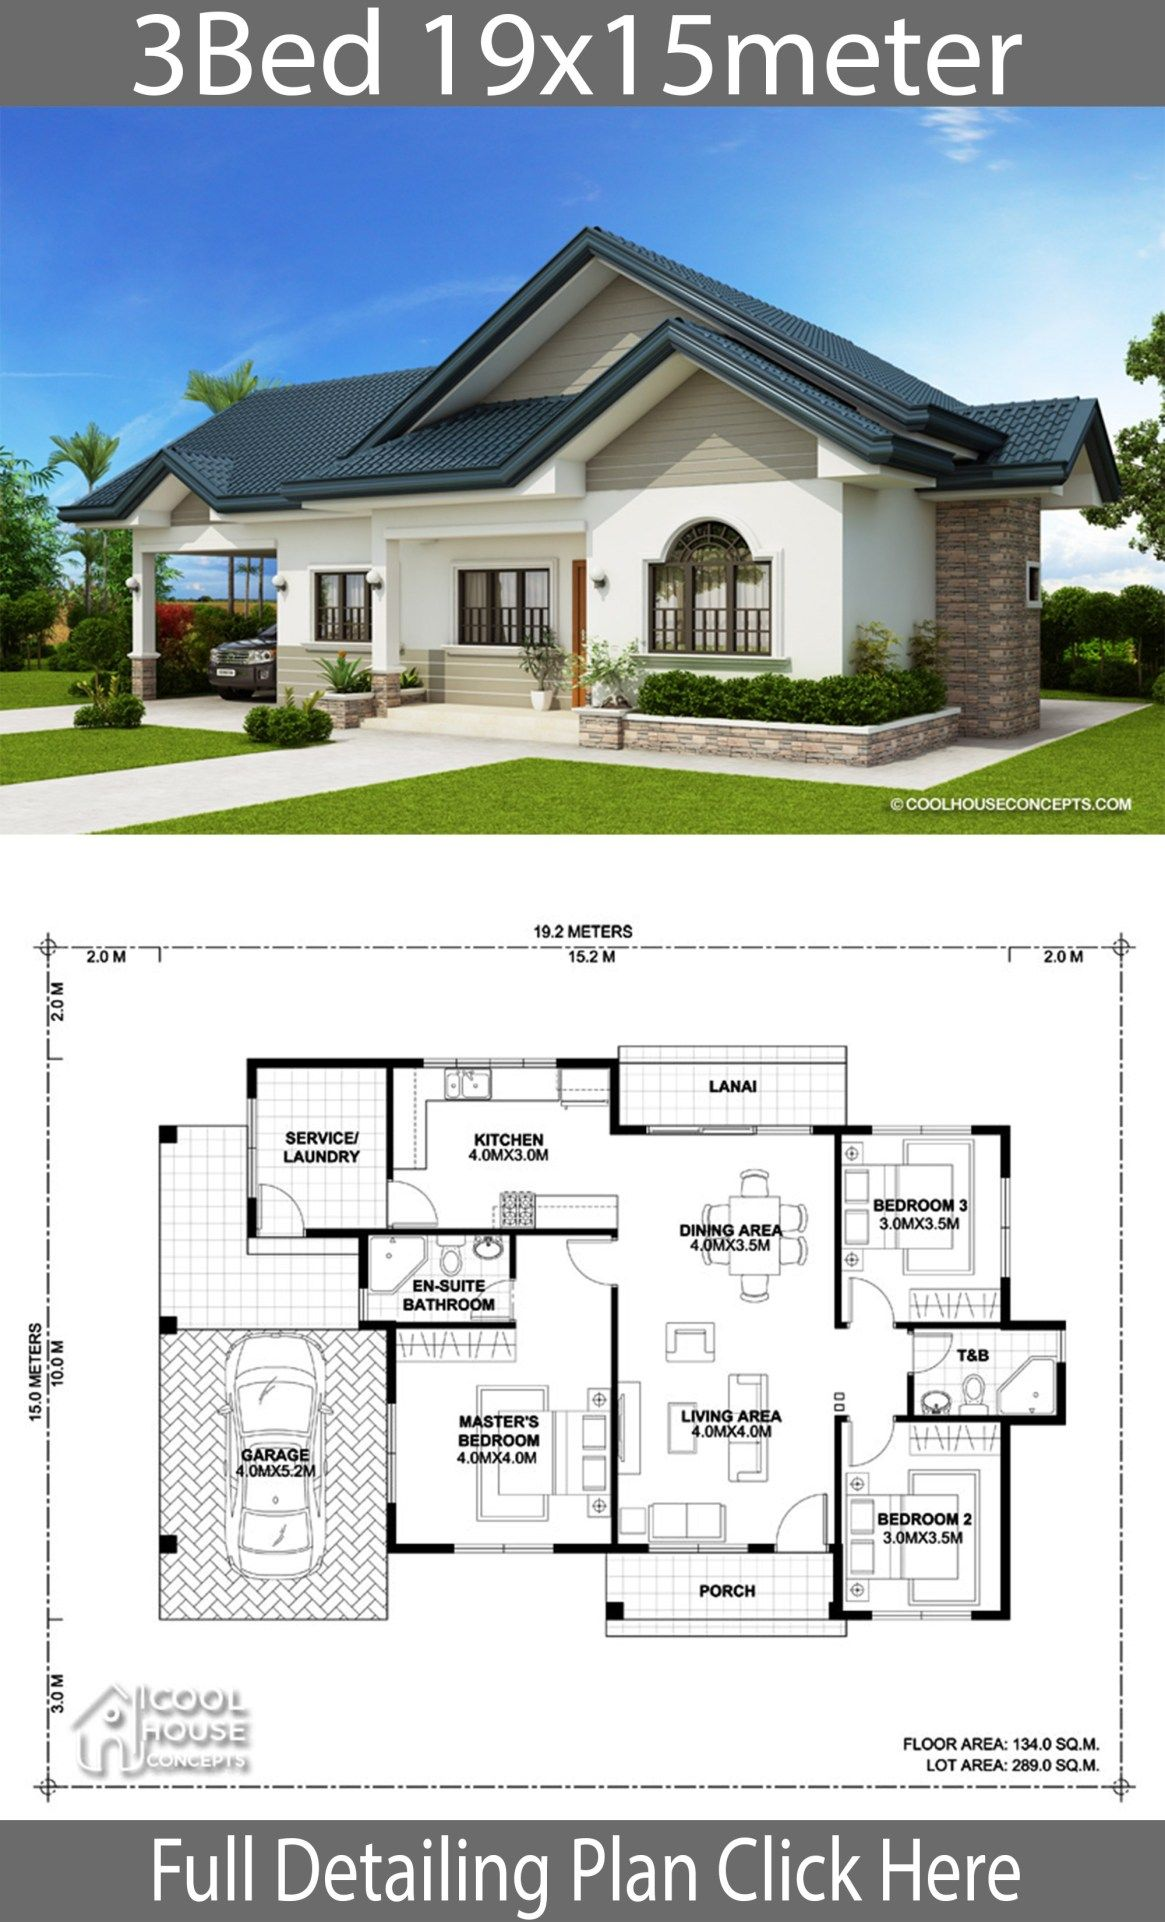 Home Design Plan 19x15m With 3 Bedrooms Home Design With Plansearch Affordable House Plans Beautiful House Plans House Plan Gallery